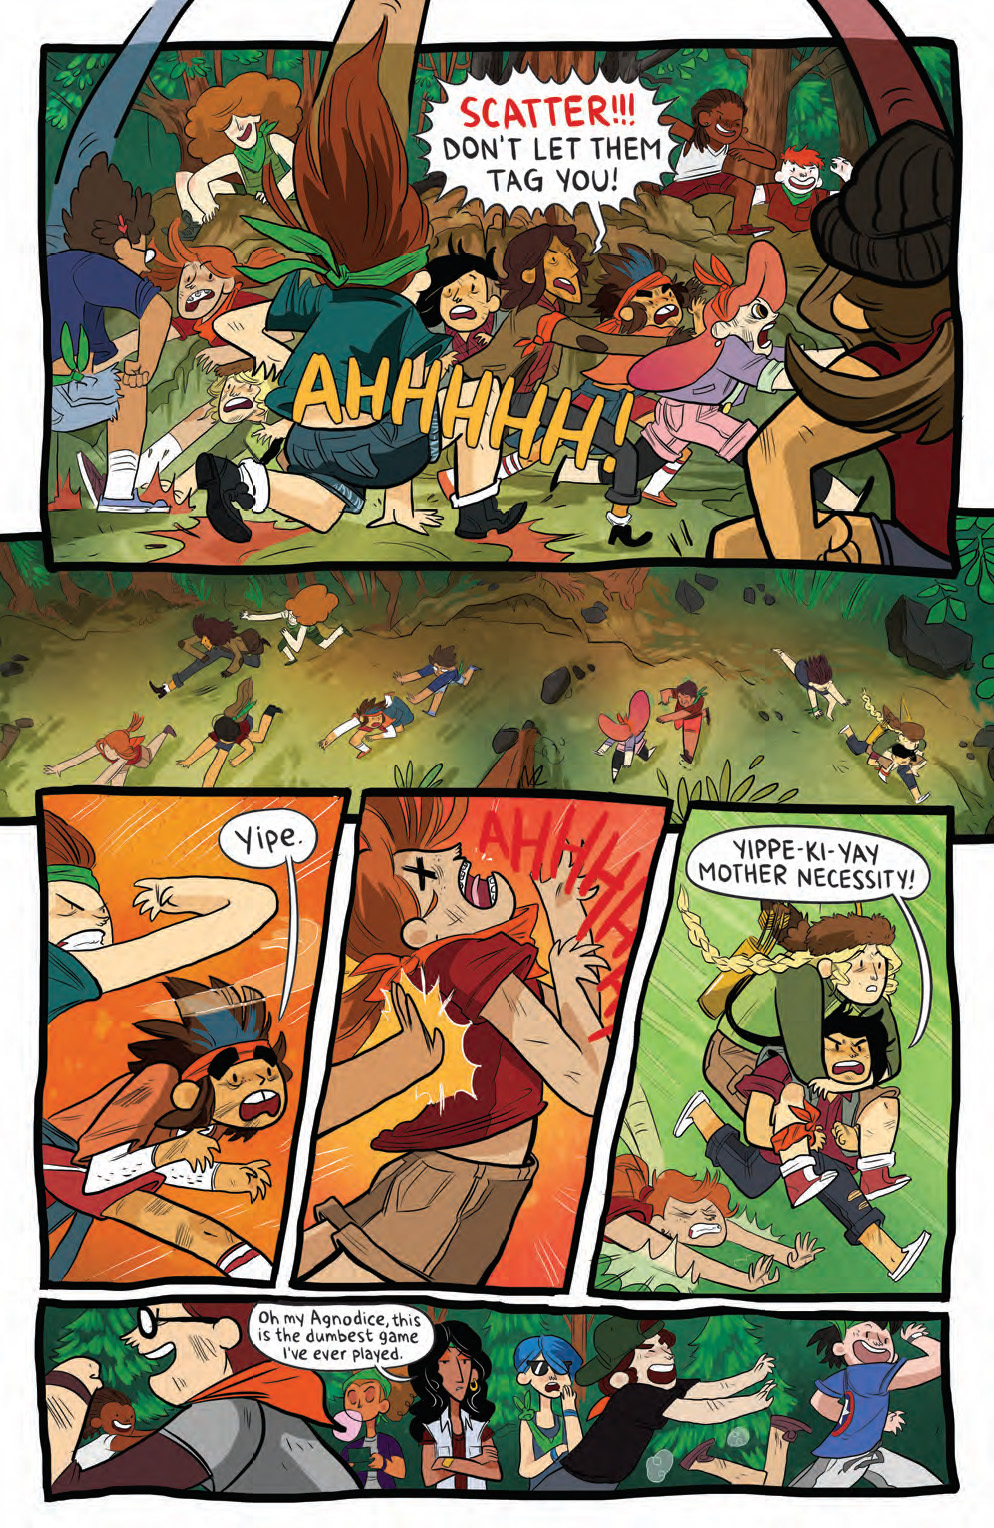 Preview - Lumberjanes #6 - Capture the Flag Gets a Bit Out ...